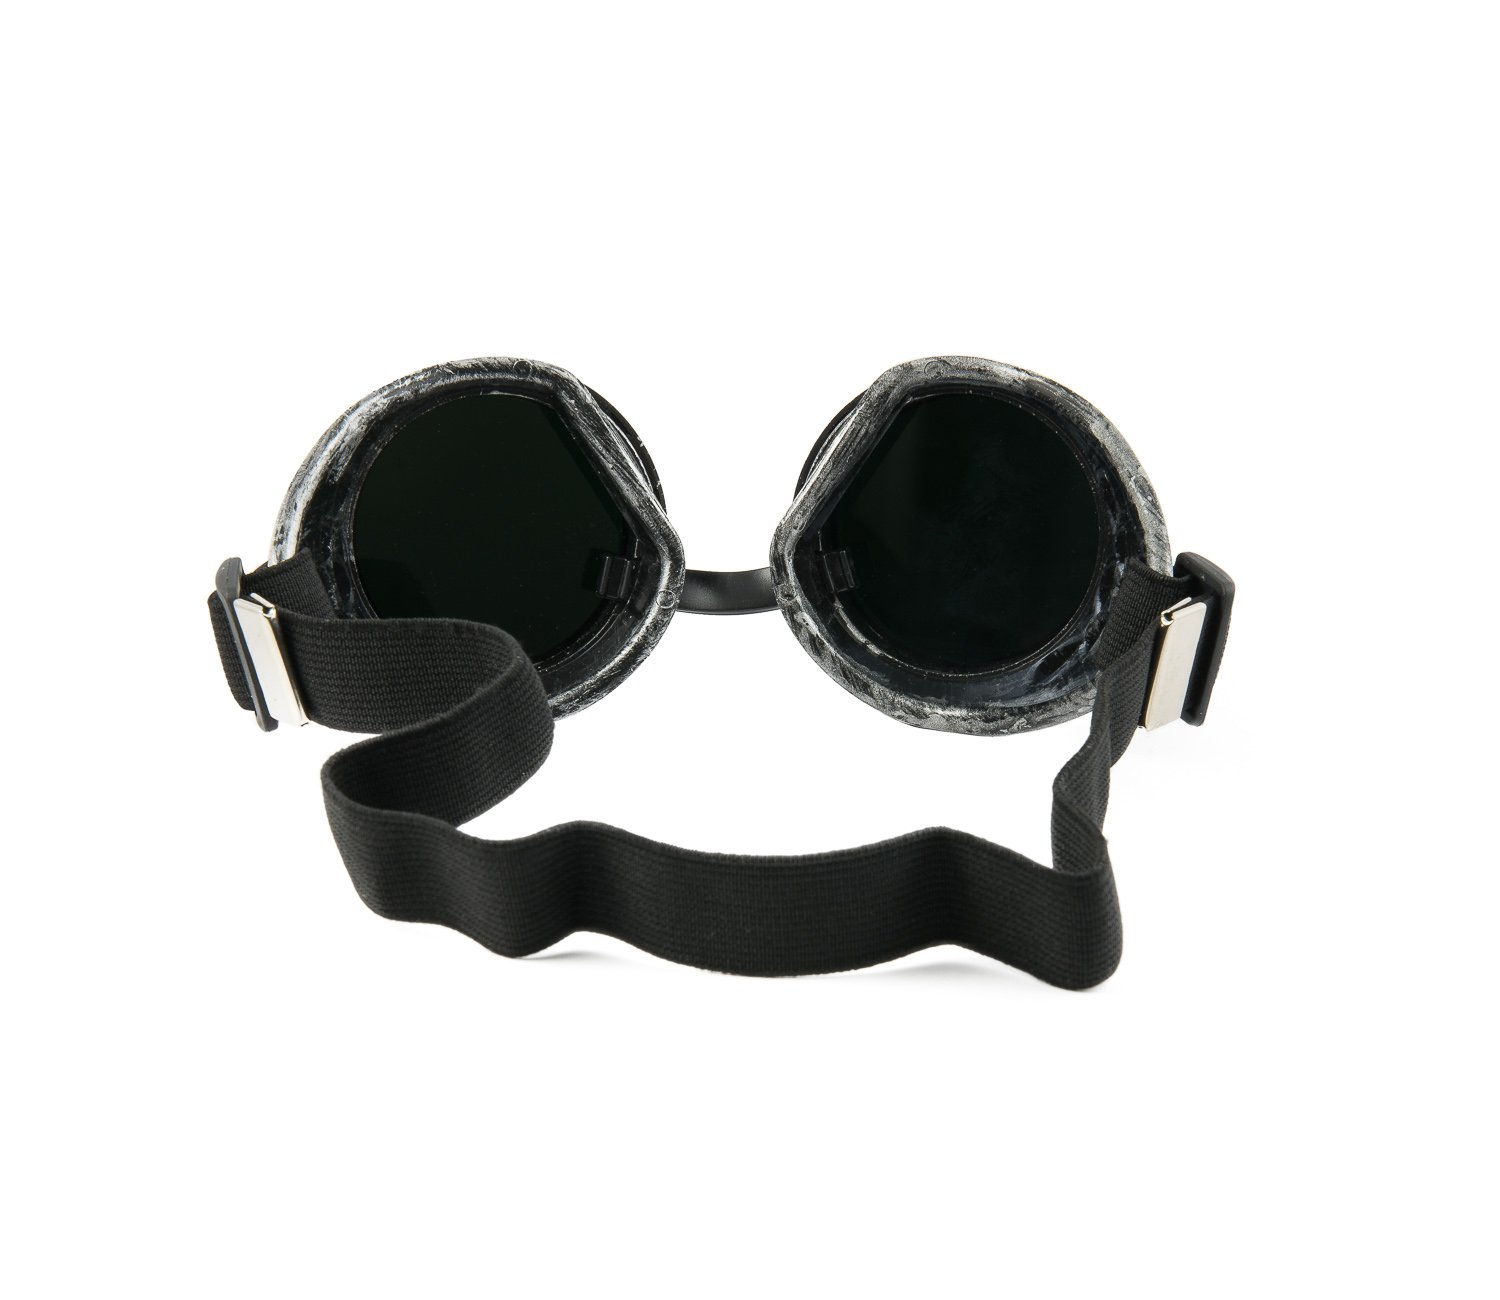 4sold TM Steampunk Black Cyber Goggles Rave Goth Vintage Victorian like Sunglasses